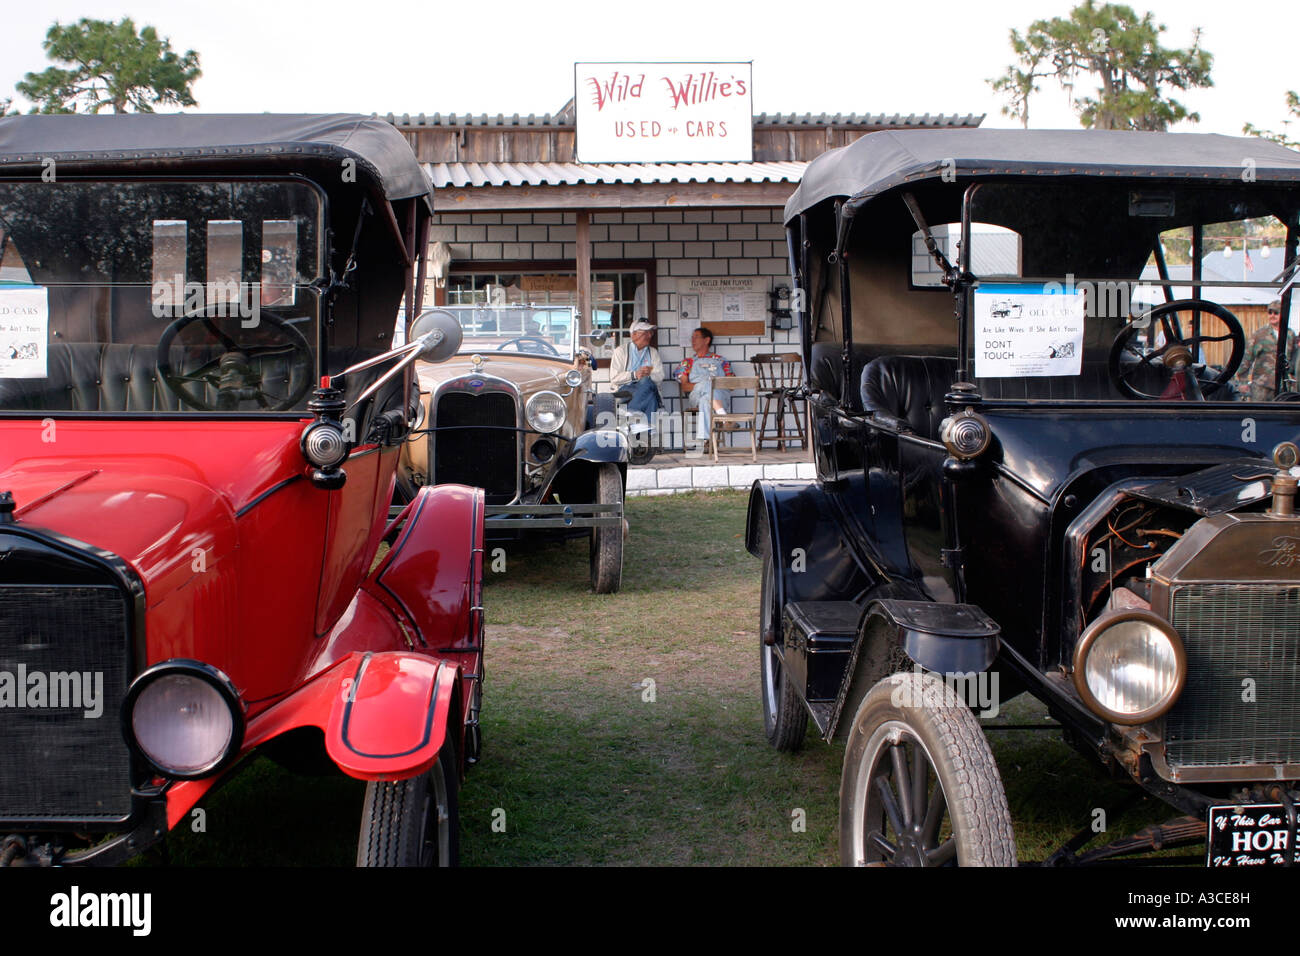 Wild Willie\'s old timer car lot at Old-Timer farm implements and ...